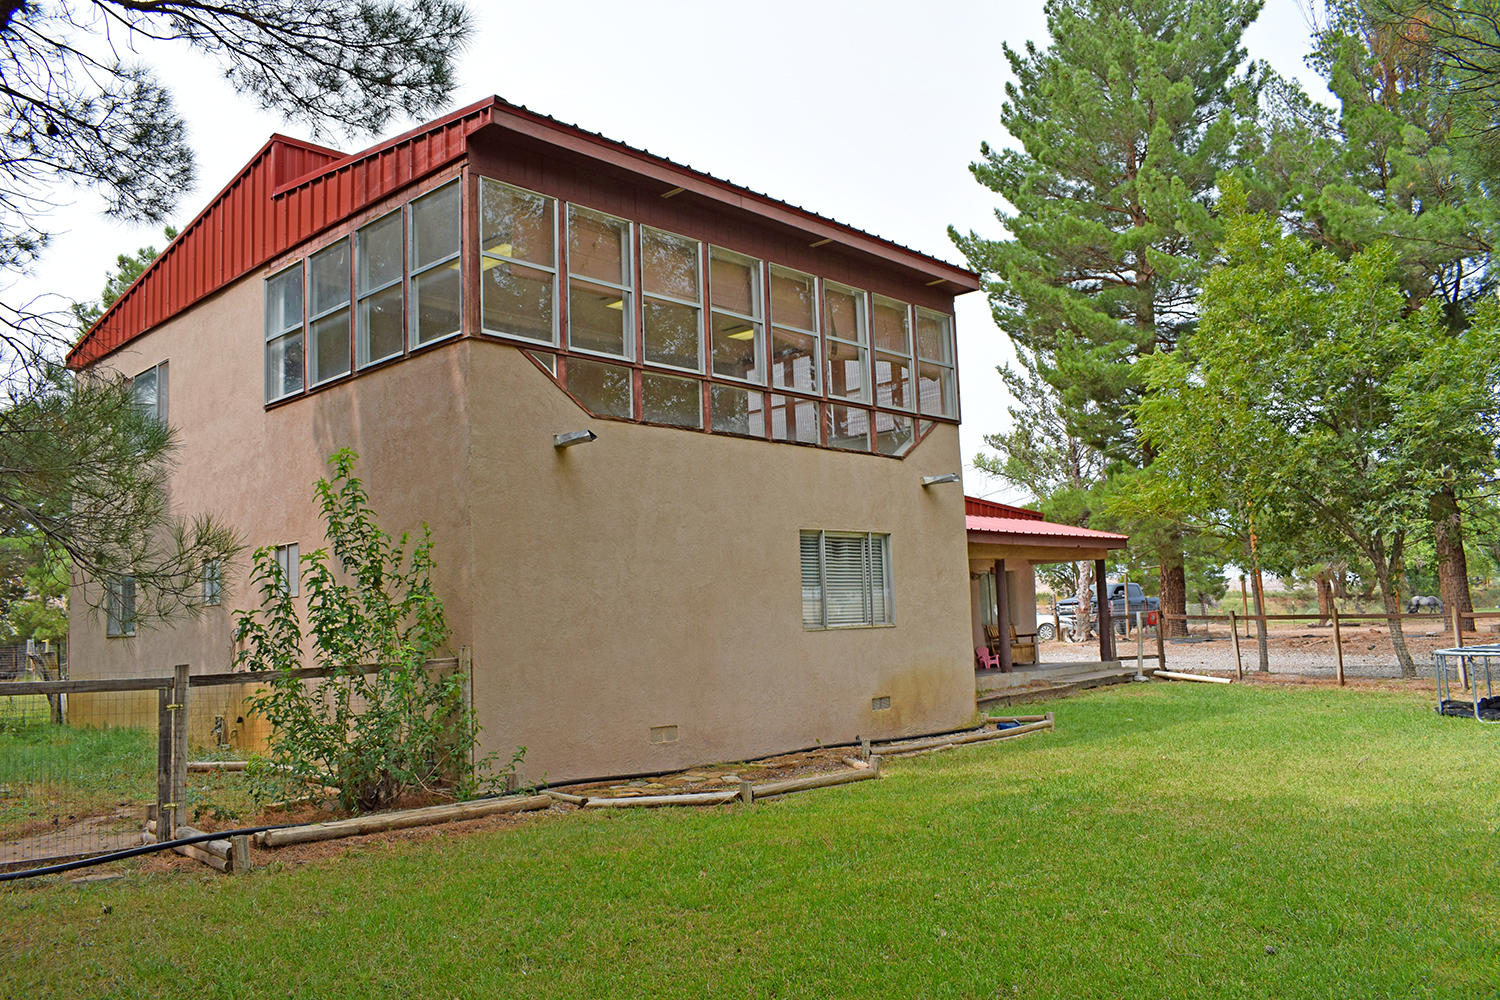 153 CAMINO SABINAL Property Photo - Bosque, NM real estate listing